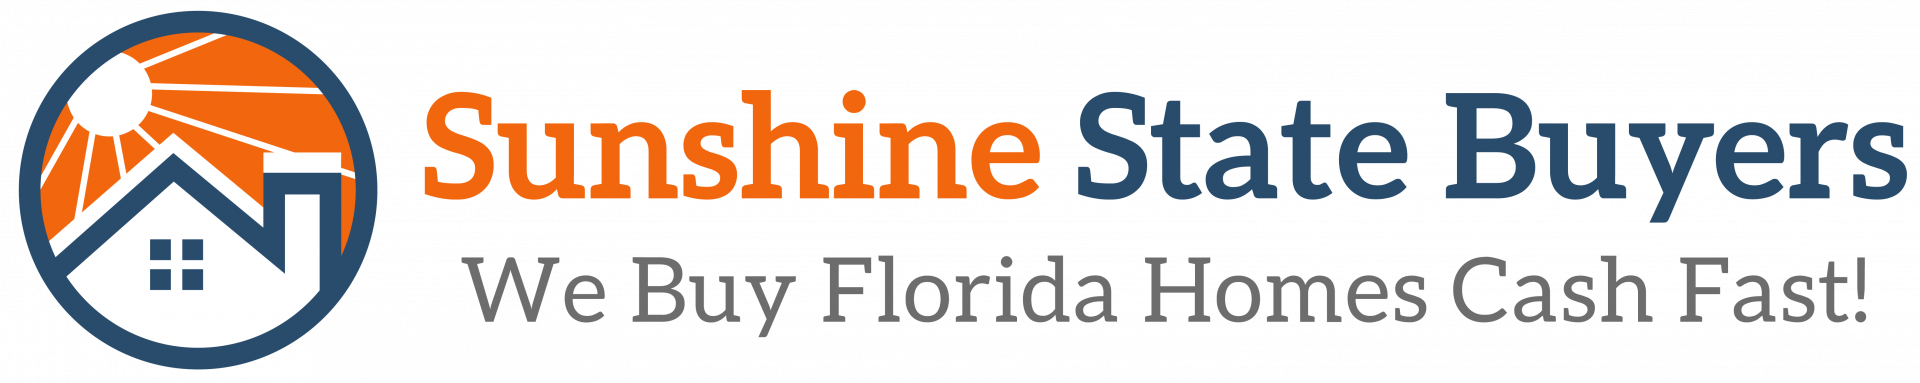 Sunshine State Buyers  logo